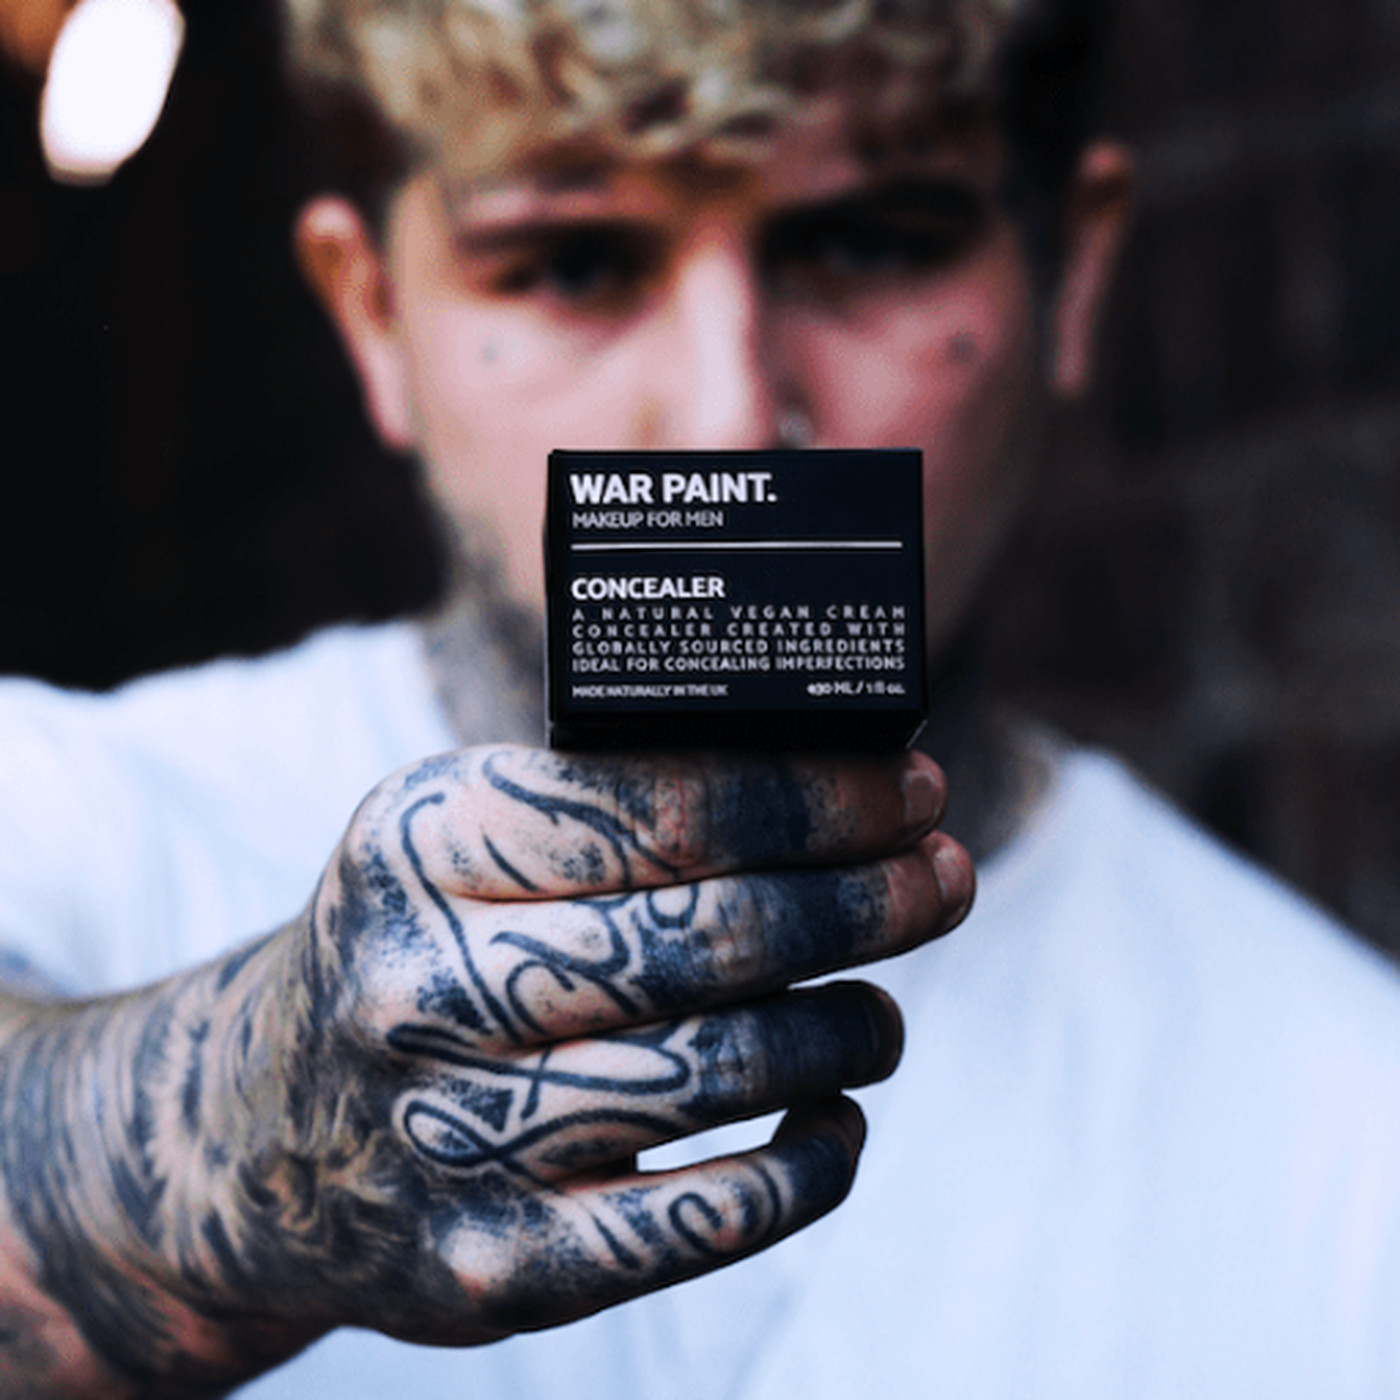 War Paint, makeup for men, uses toxic masculinity to sell foundation - Vox